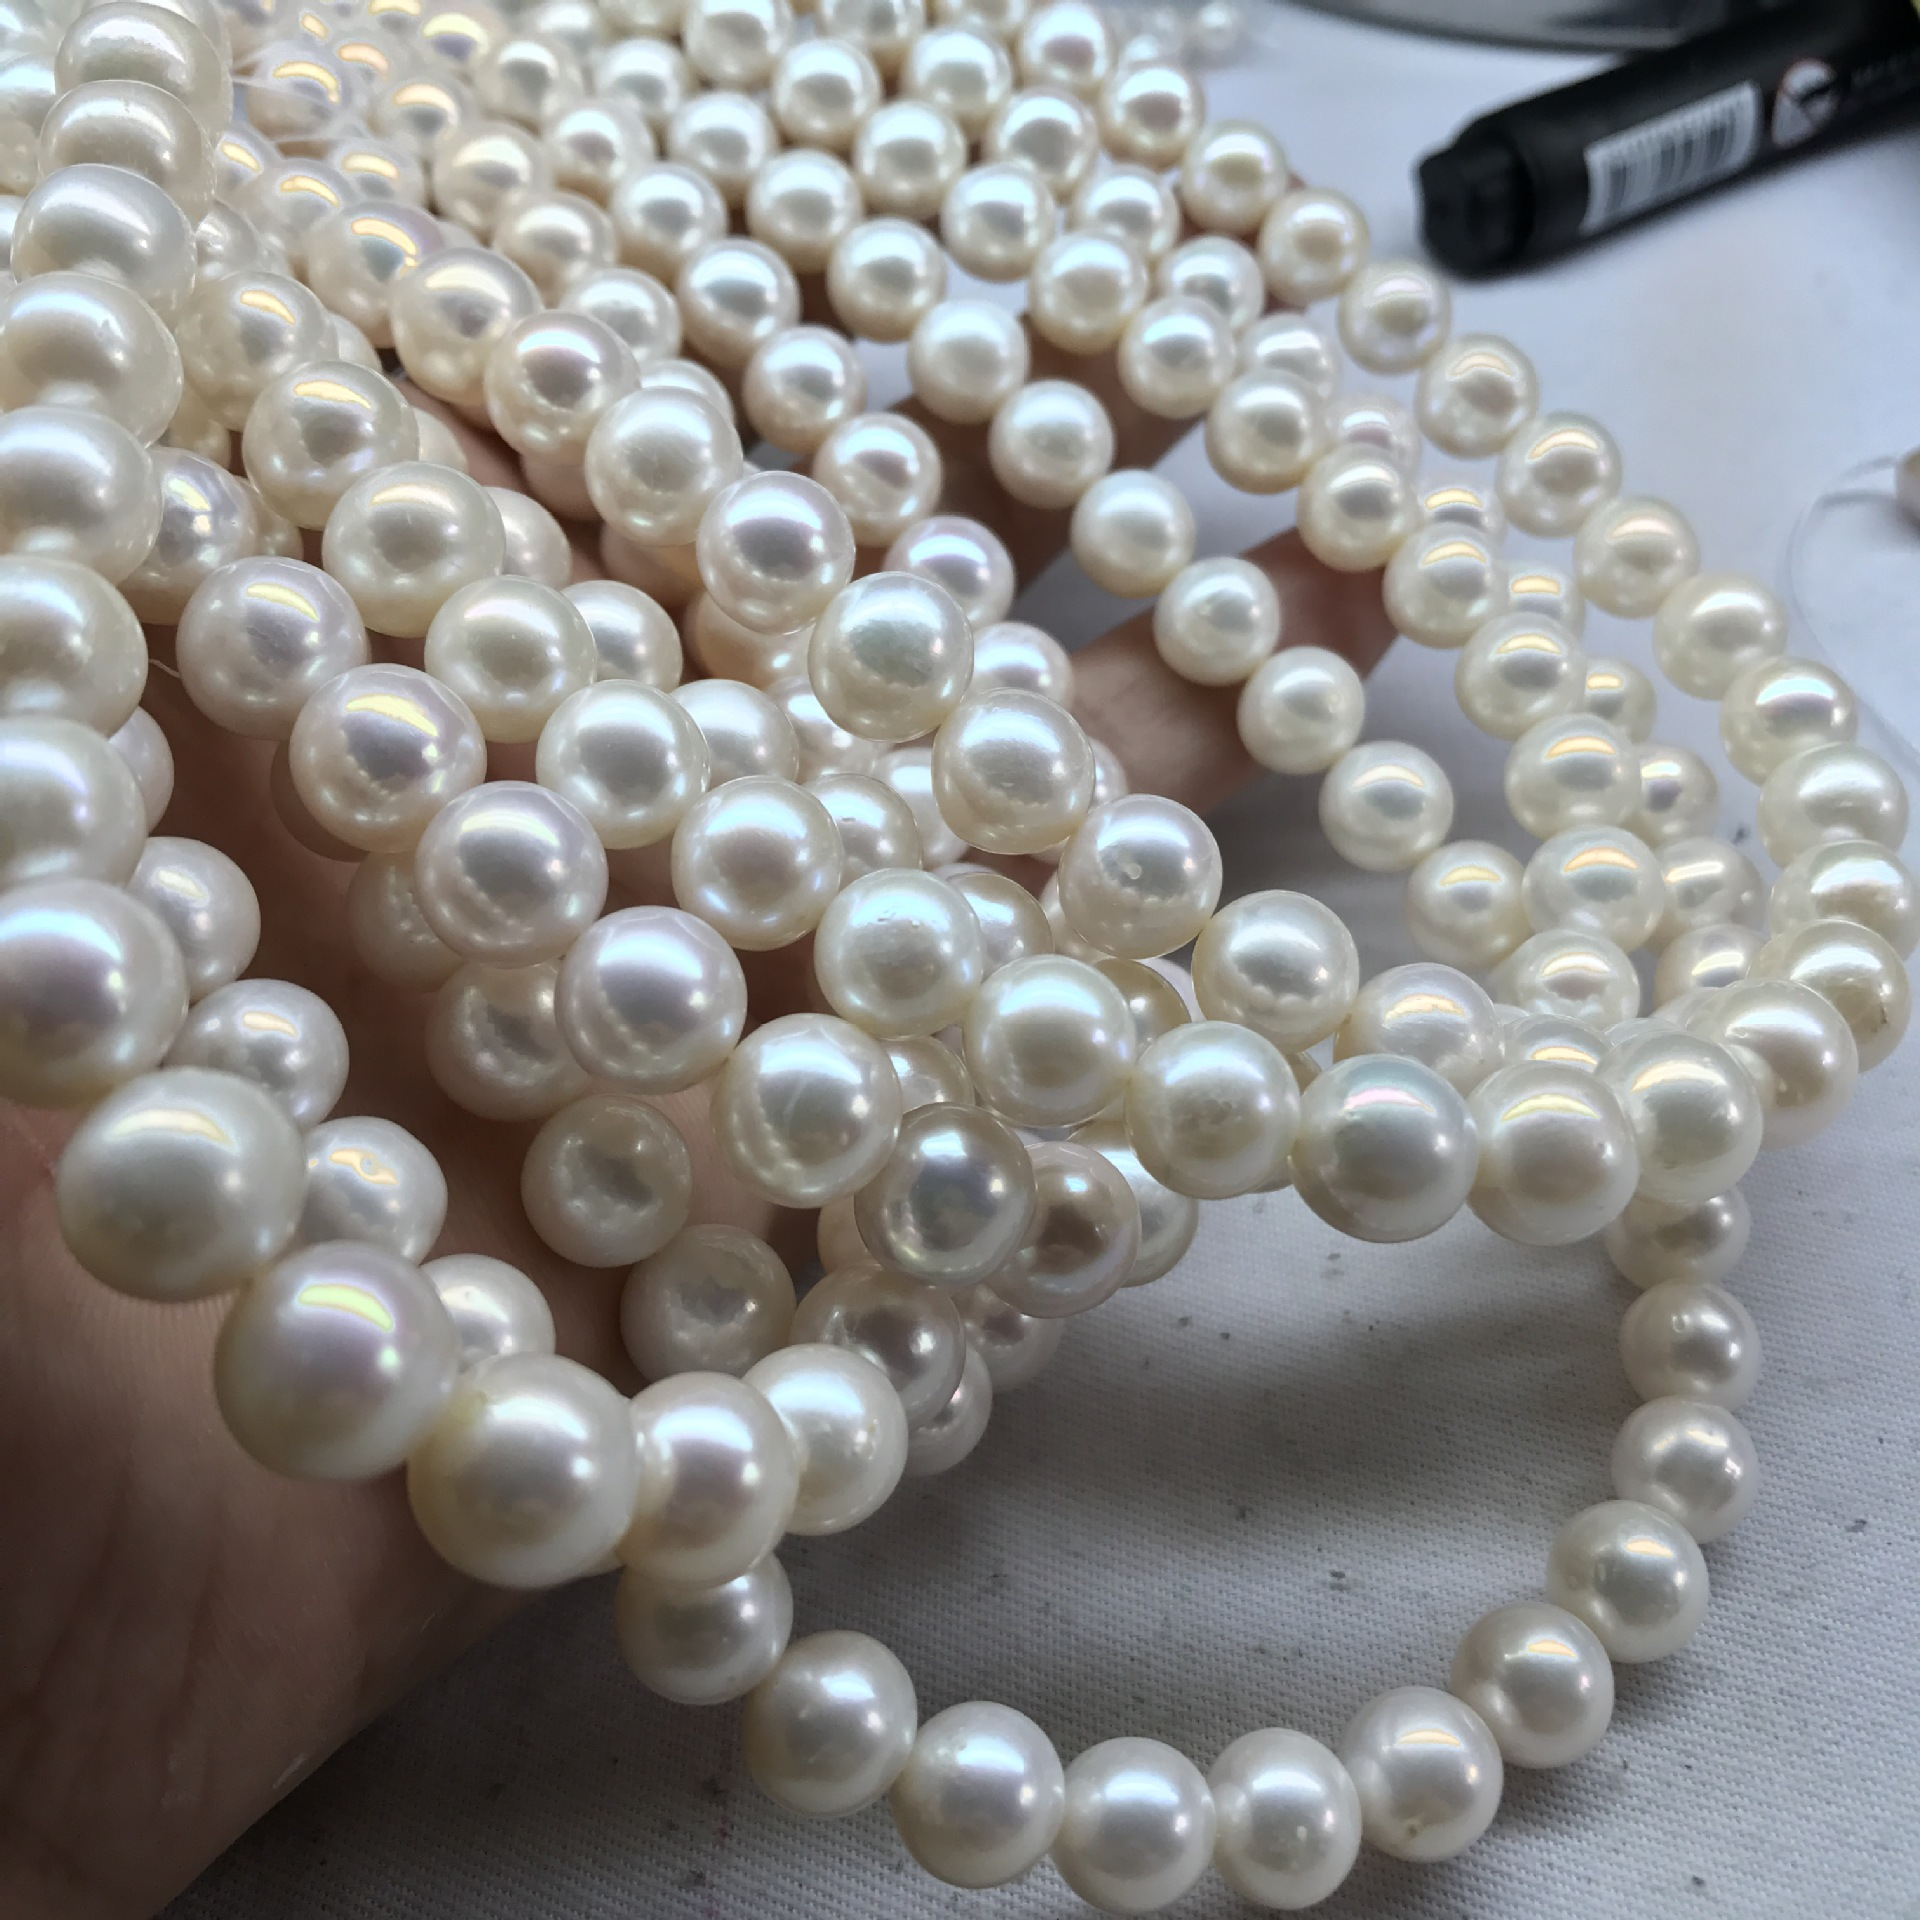 White Faux Pearl Necklace for Wedding Accessories